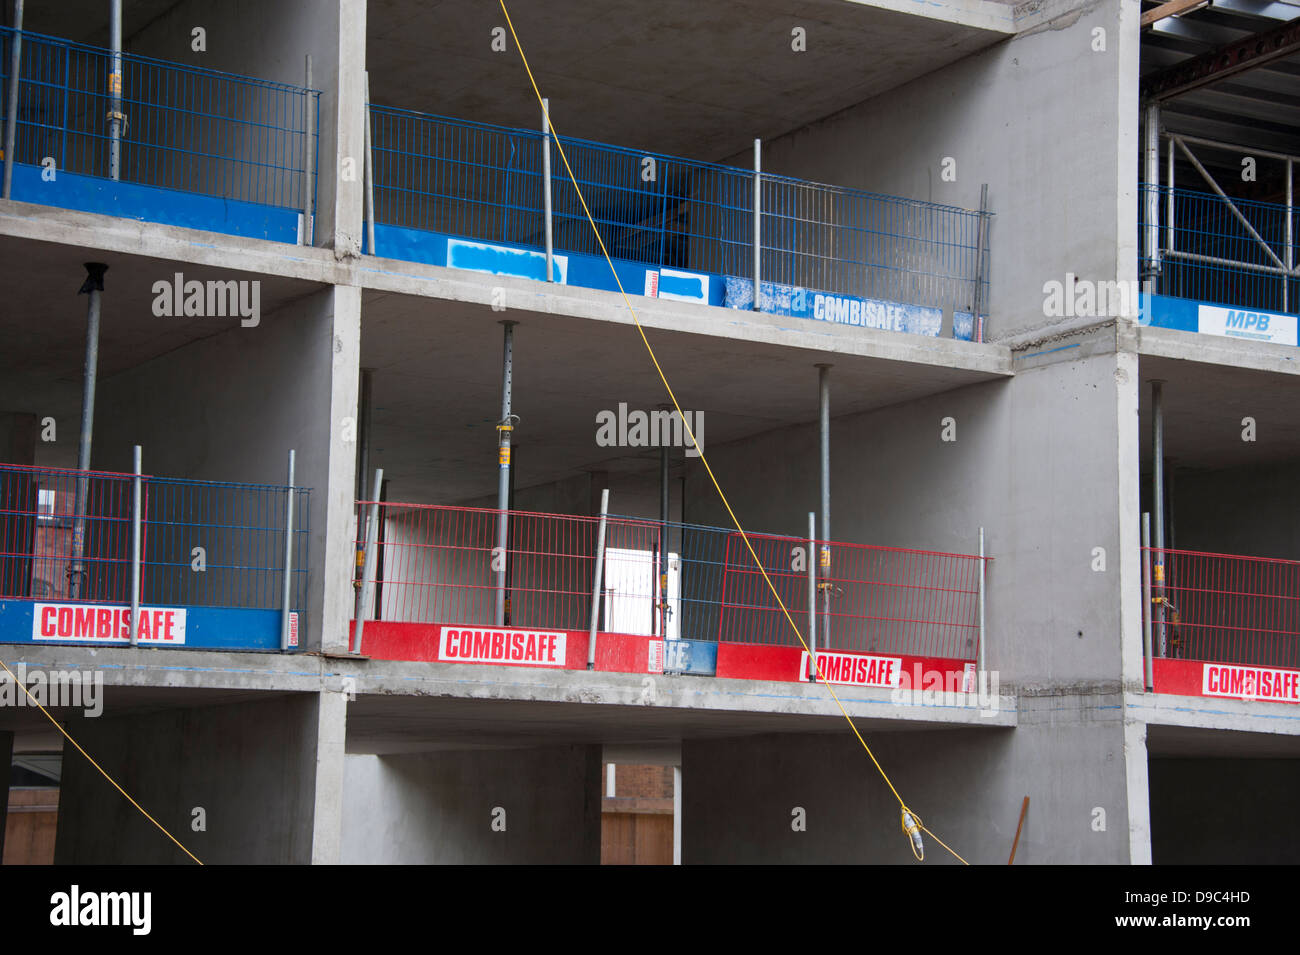 Building site construction safety edge protection barrier